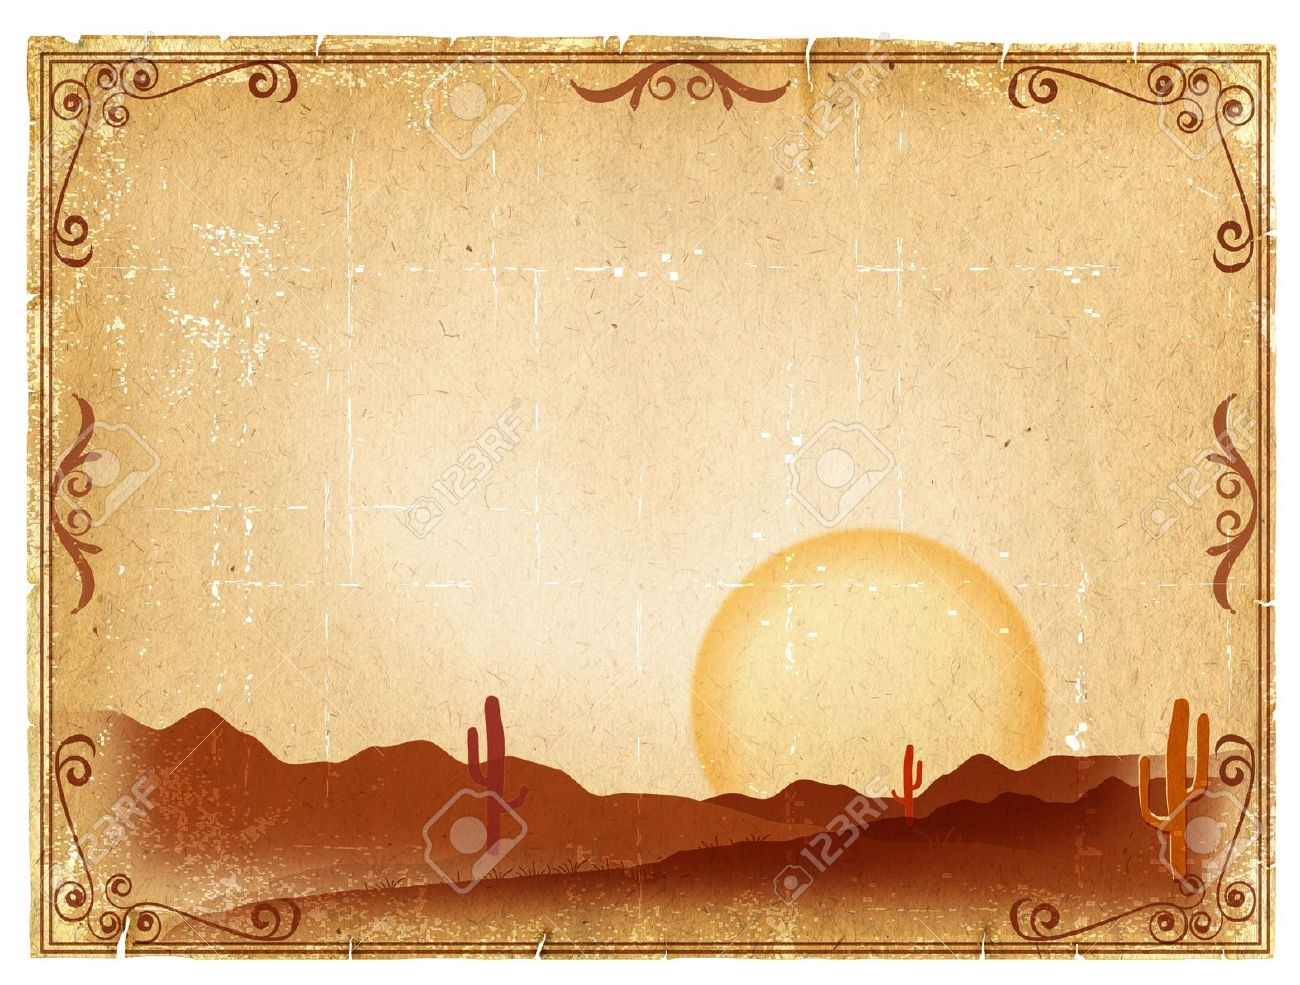 Desert Sunset with Cactus in sunset on old vintage paper background Stock Photo - 9459667